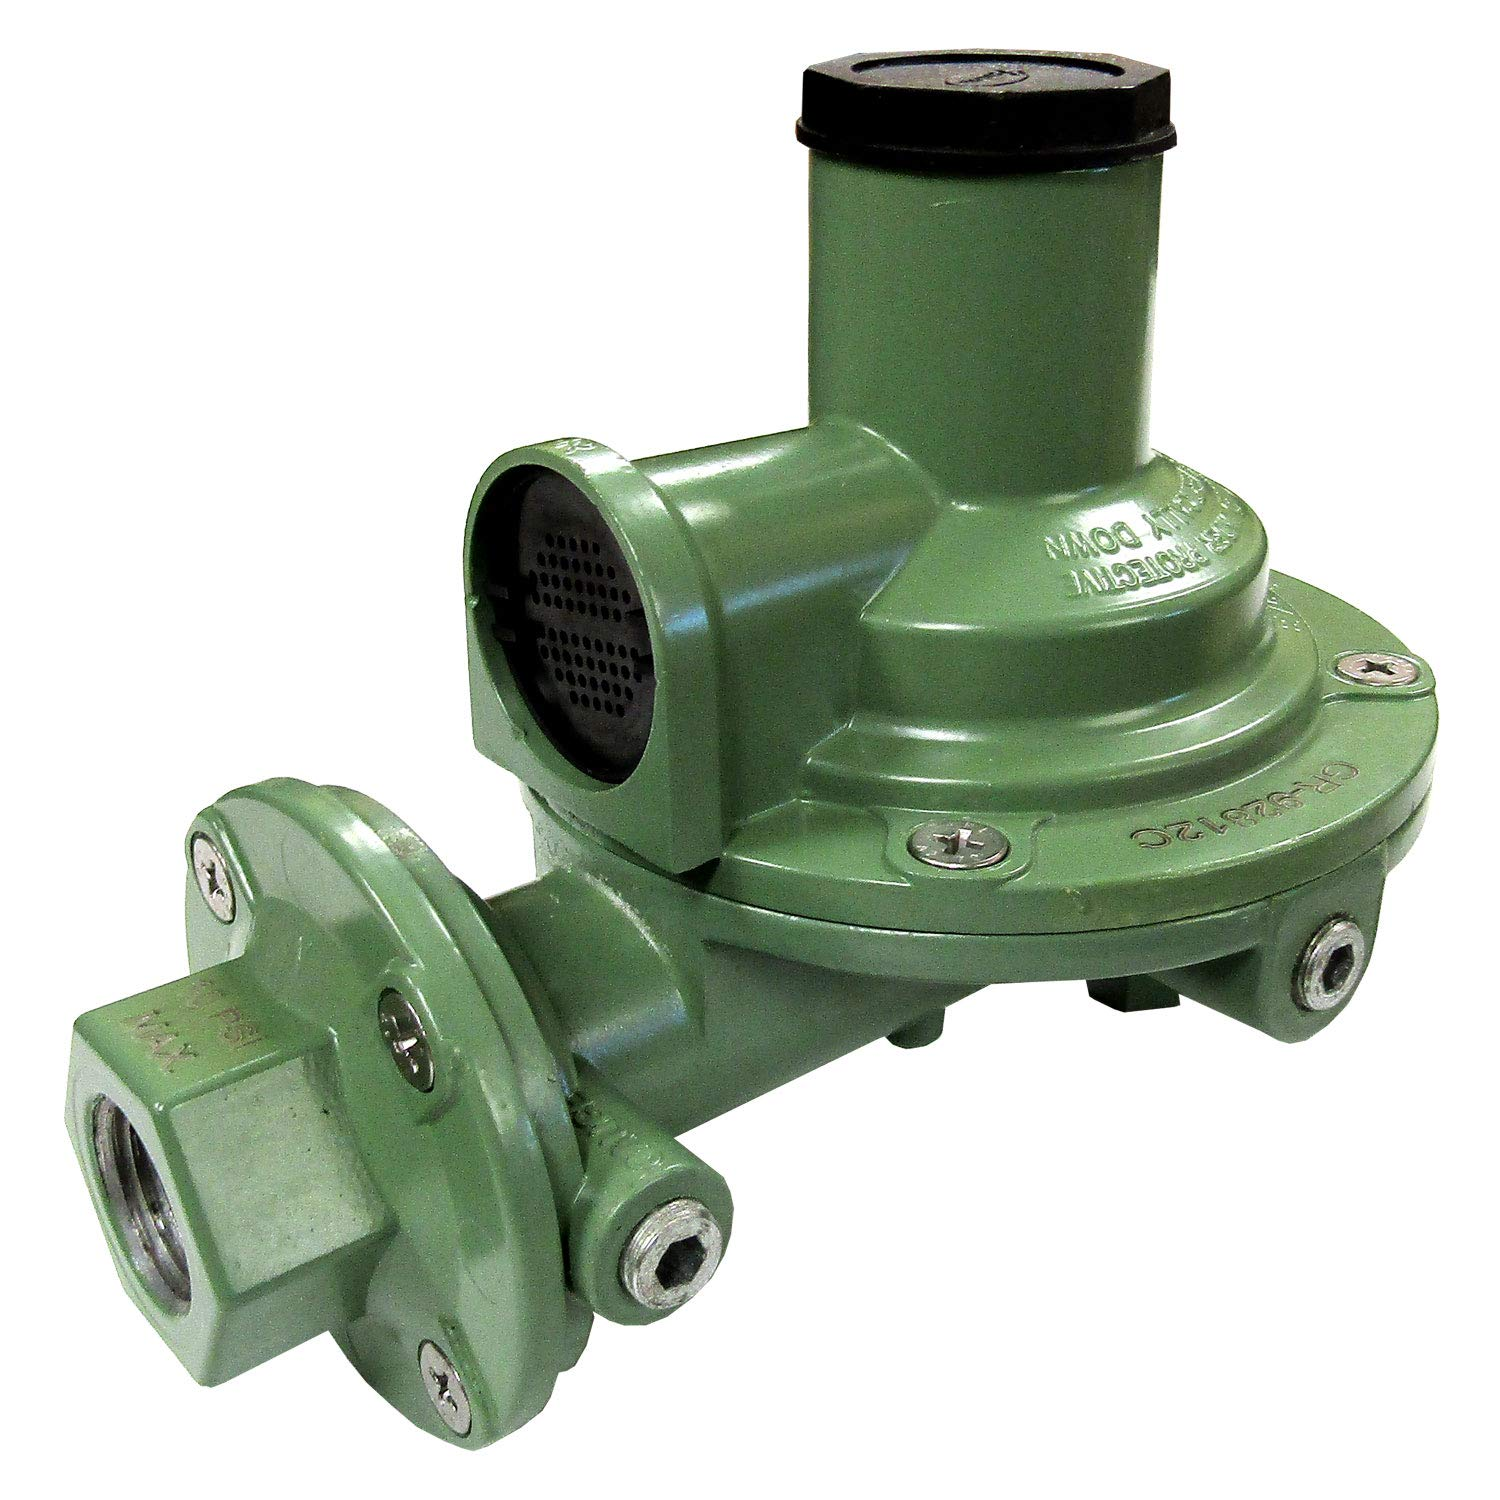 Fairview GR-92812C Compact Second Stage Low Pressure Propane Regulator